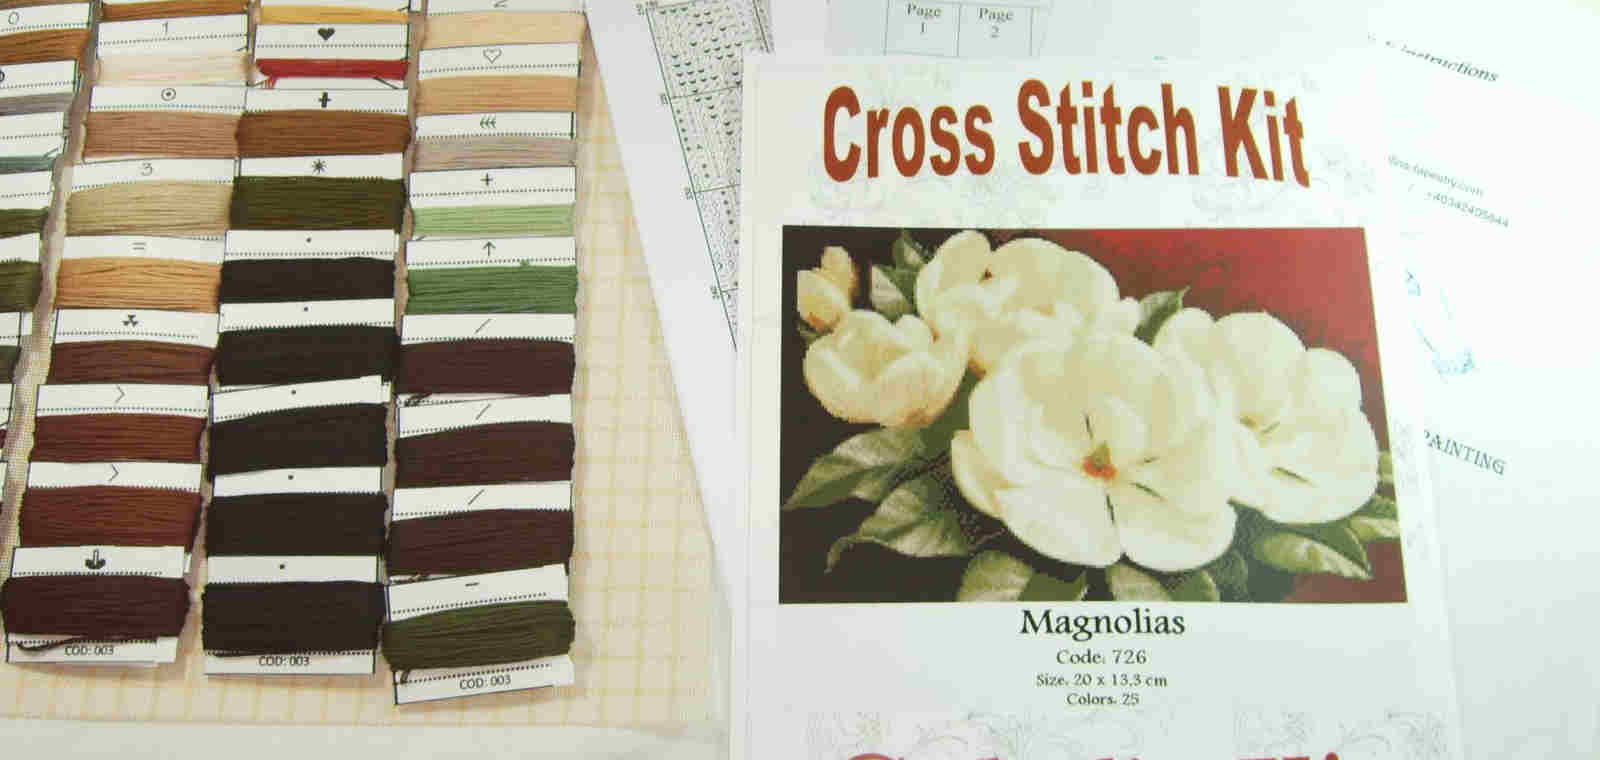 Cross Stitch Kit Elements